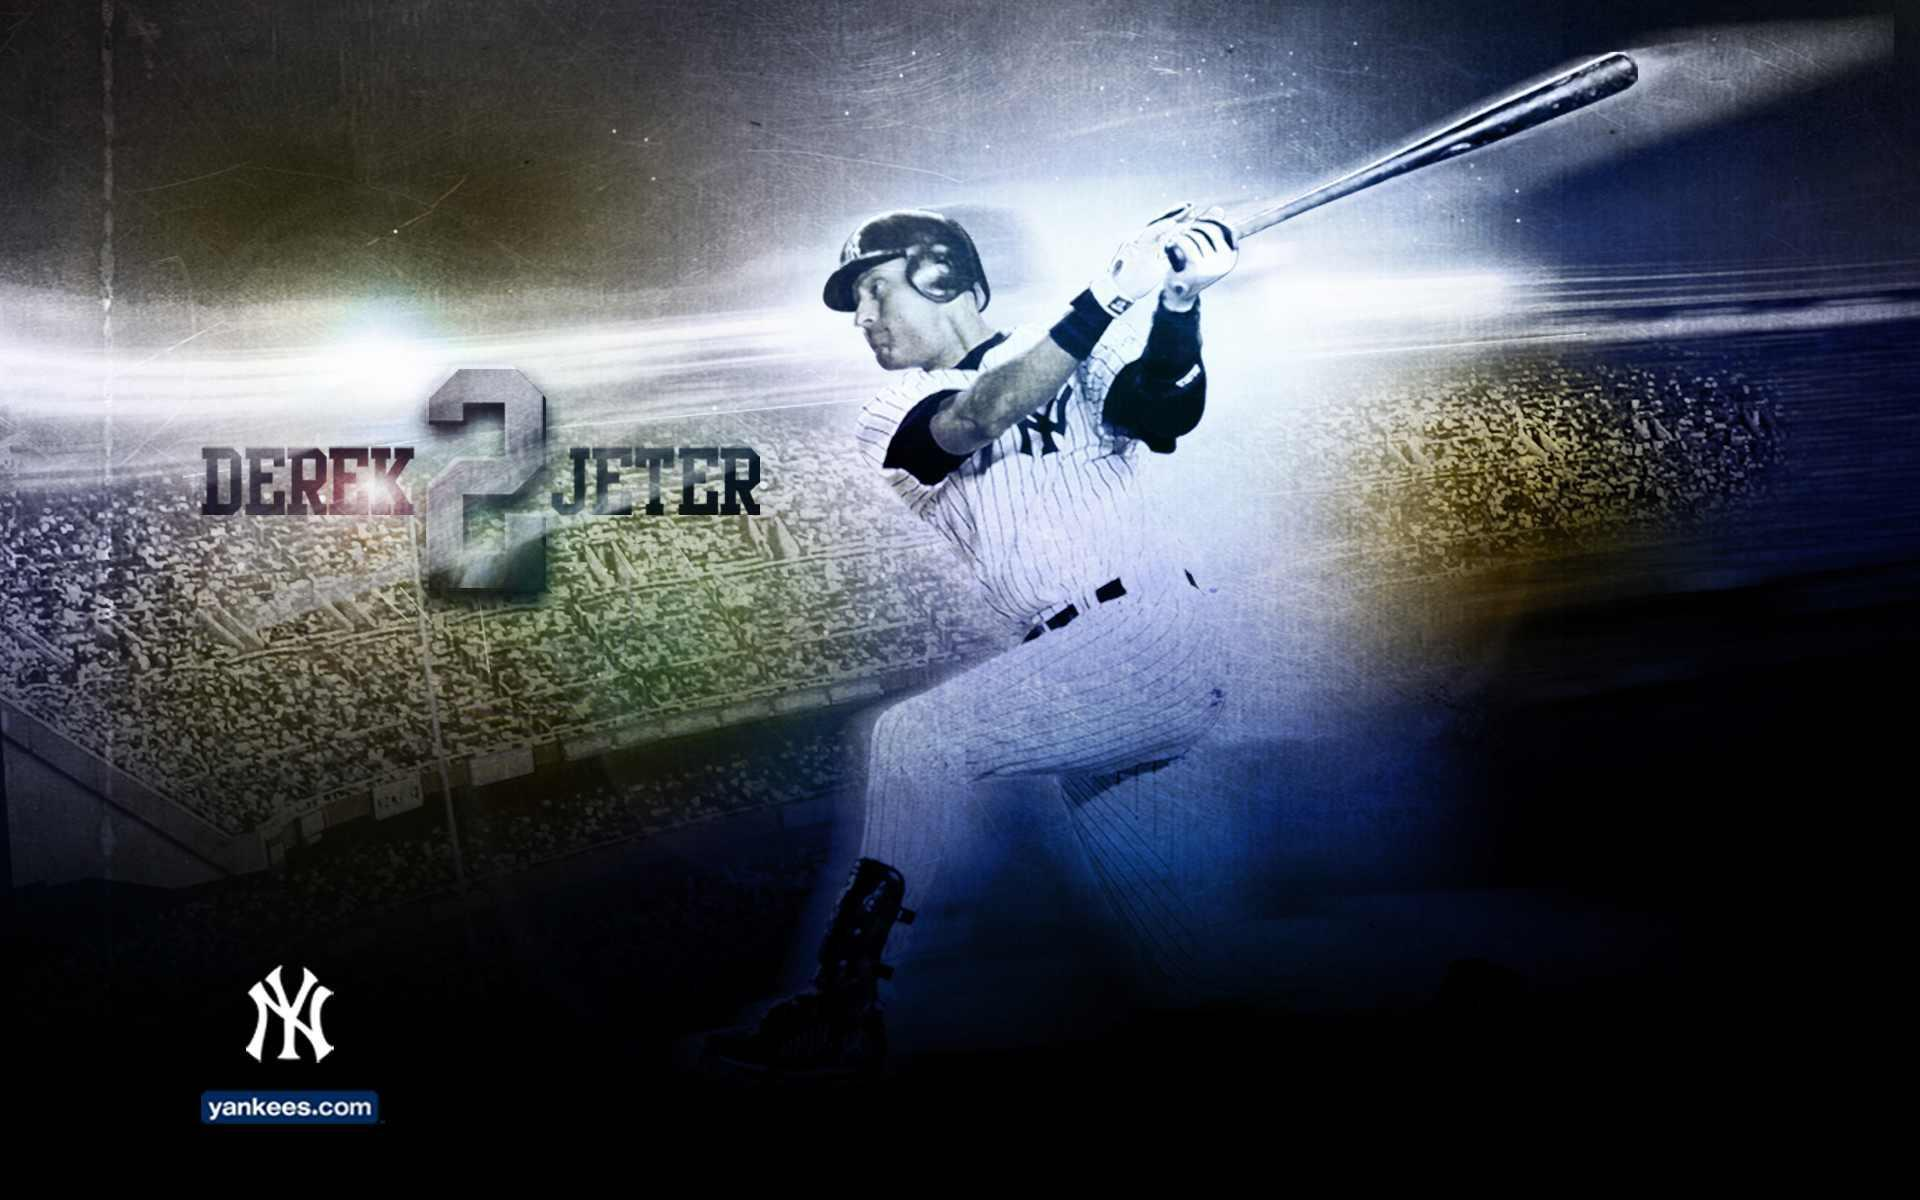 New York Yankees images Derek Jeter HD wallpaper and background photos